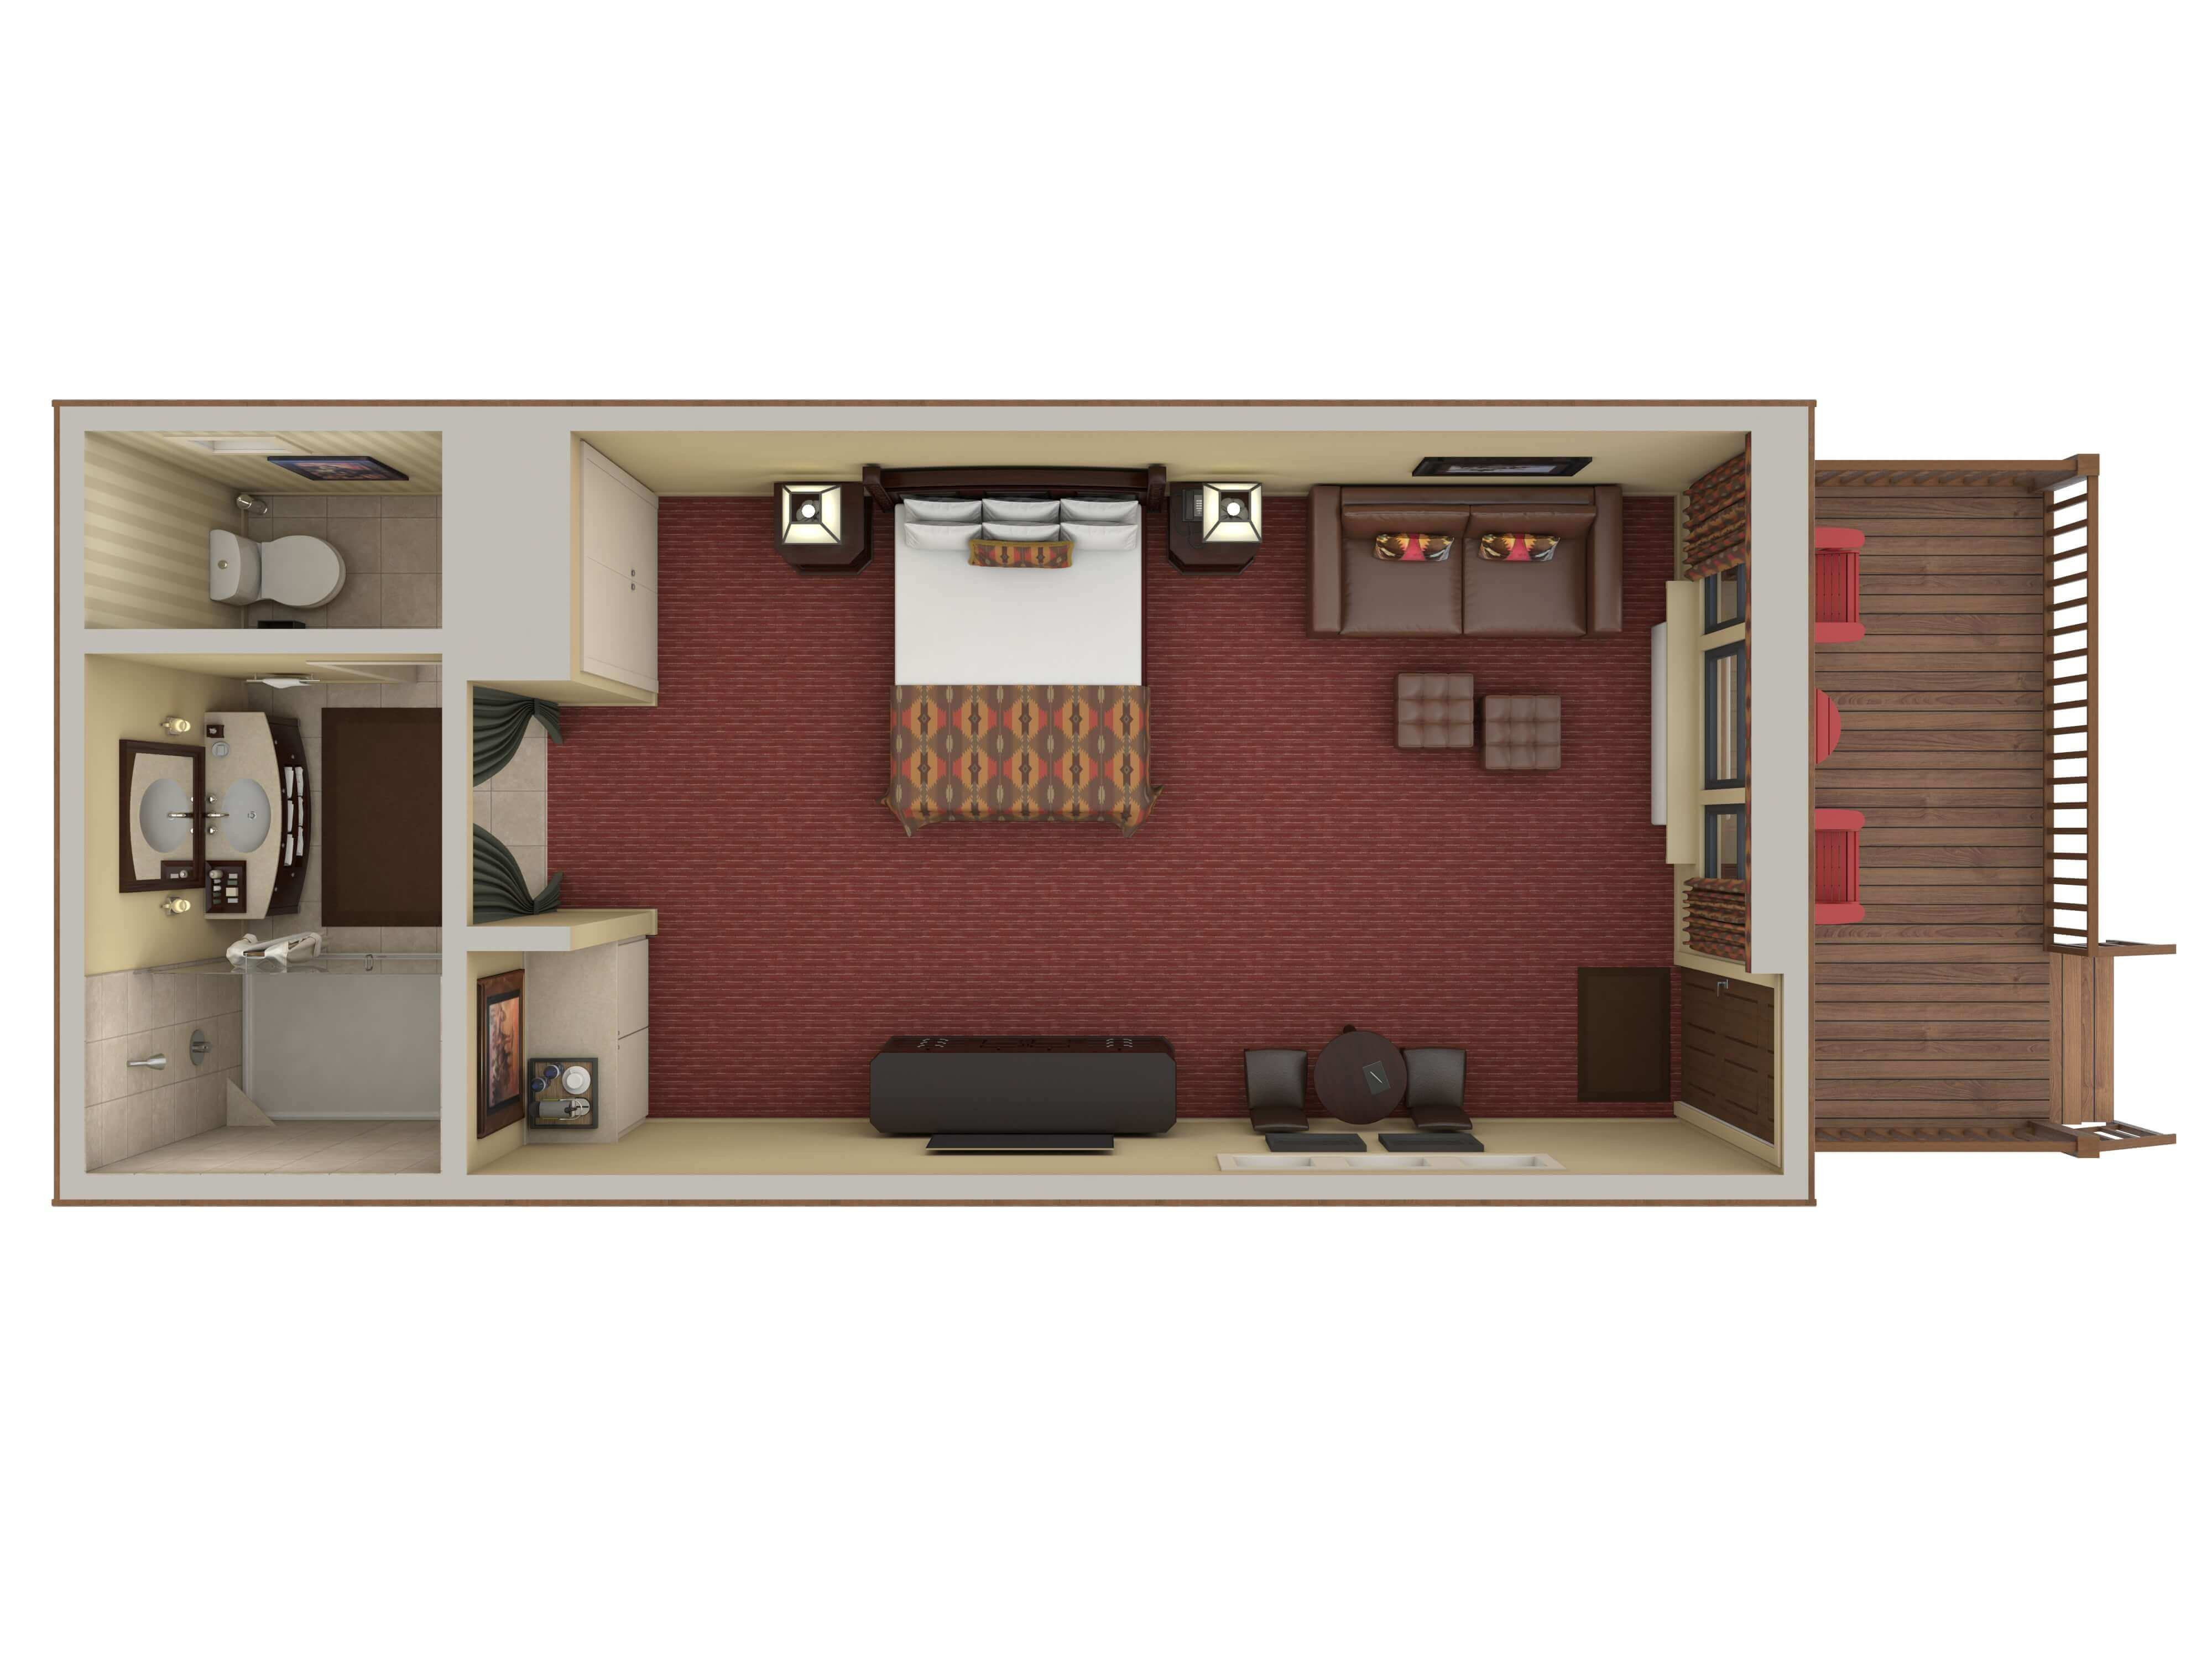 digital image of luxury hotel cabin with king bed looking from above